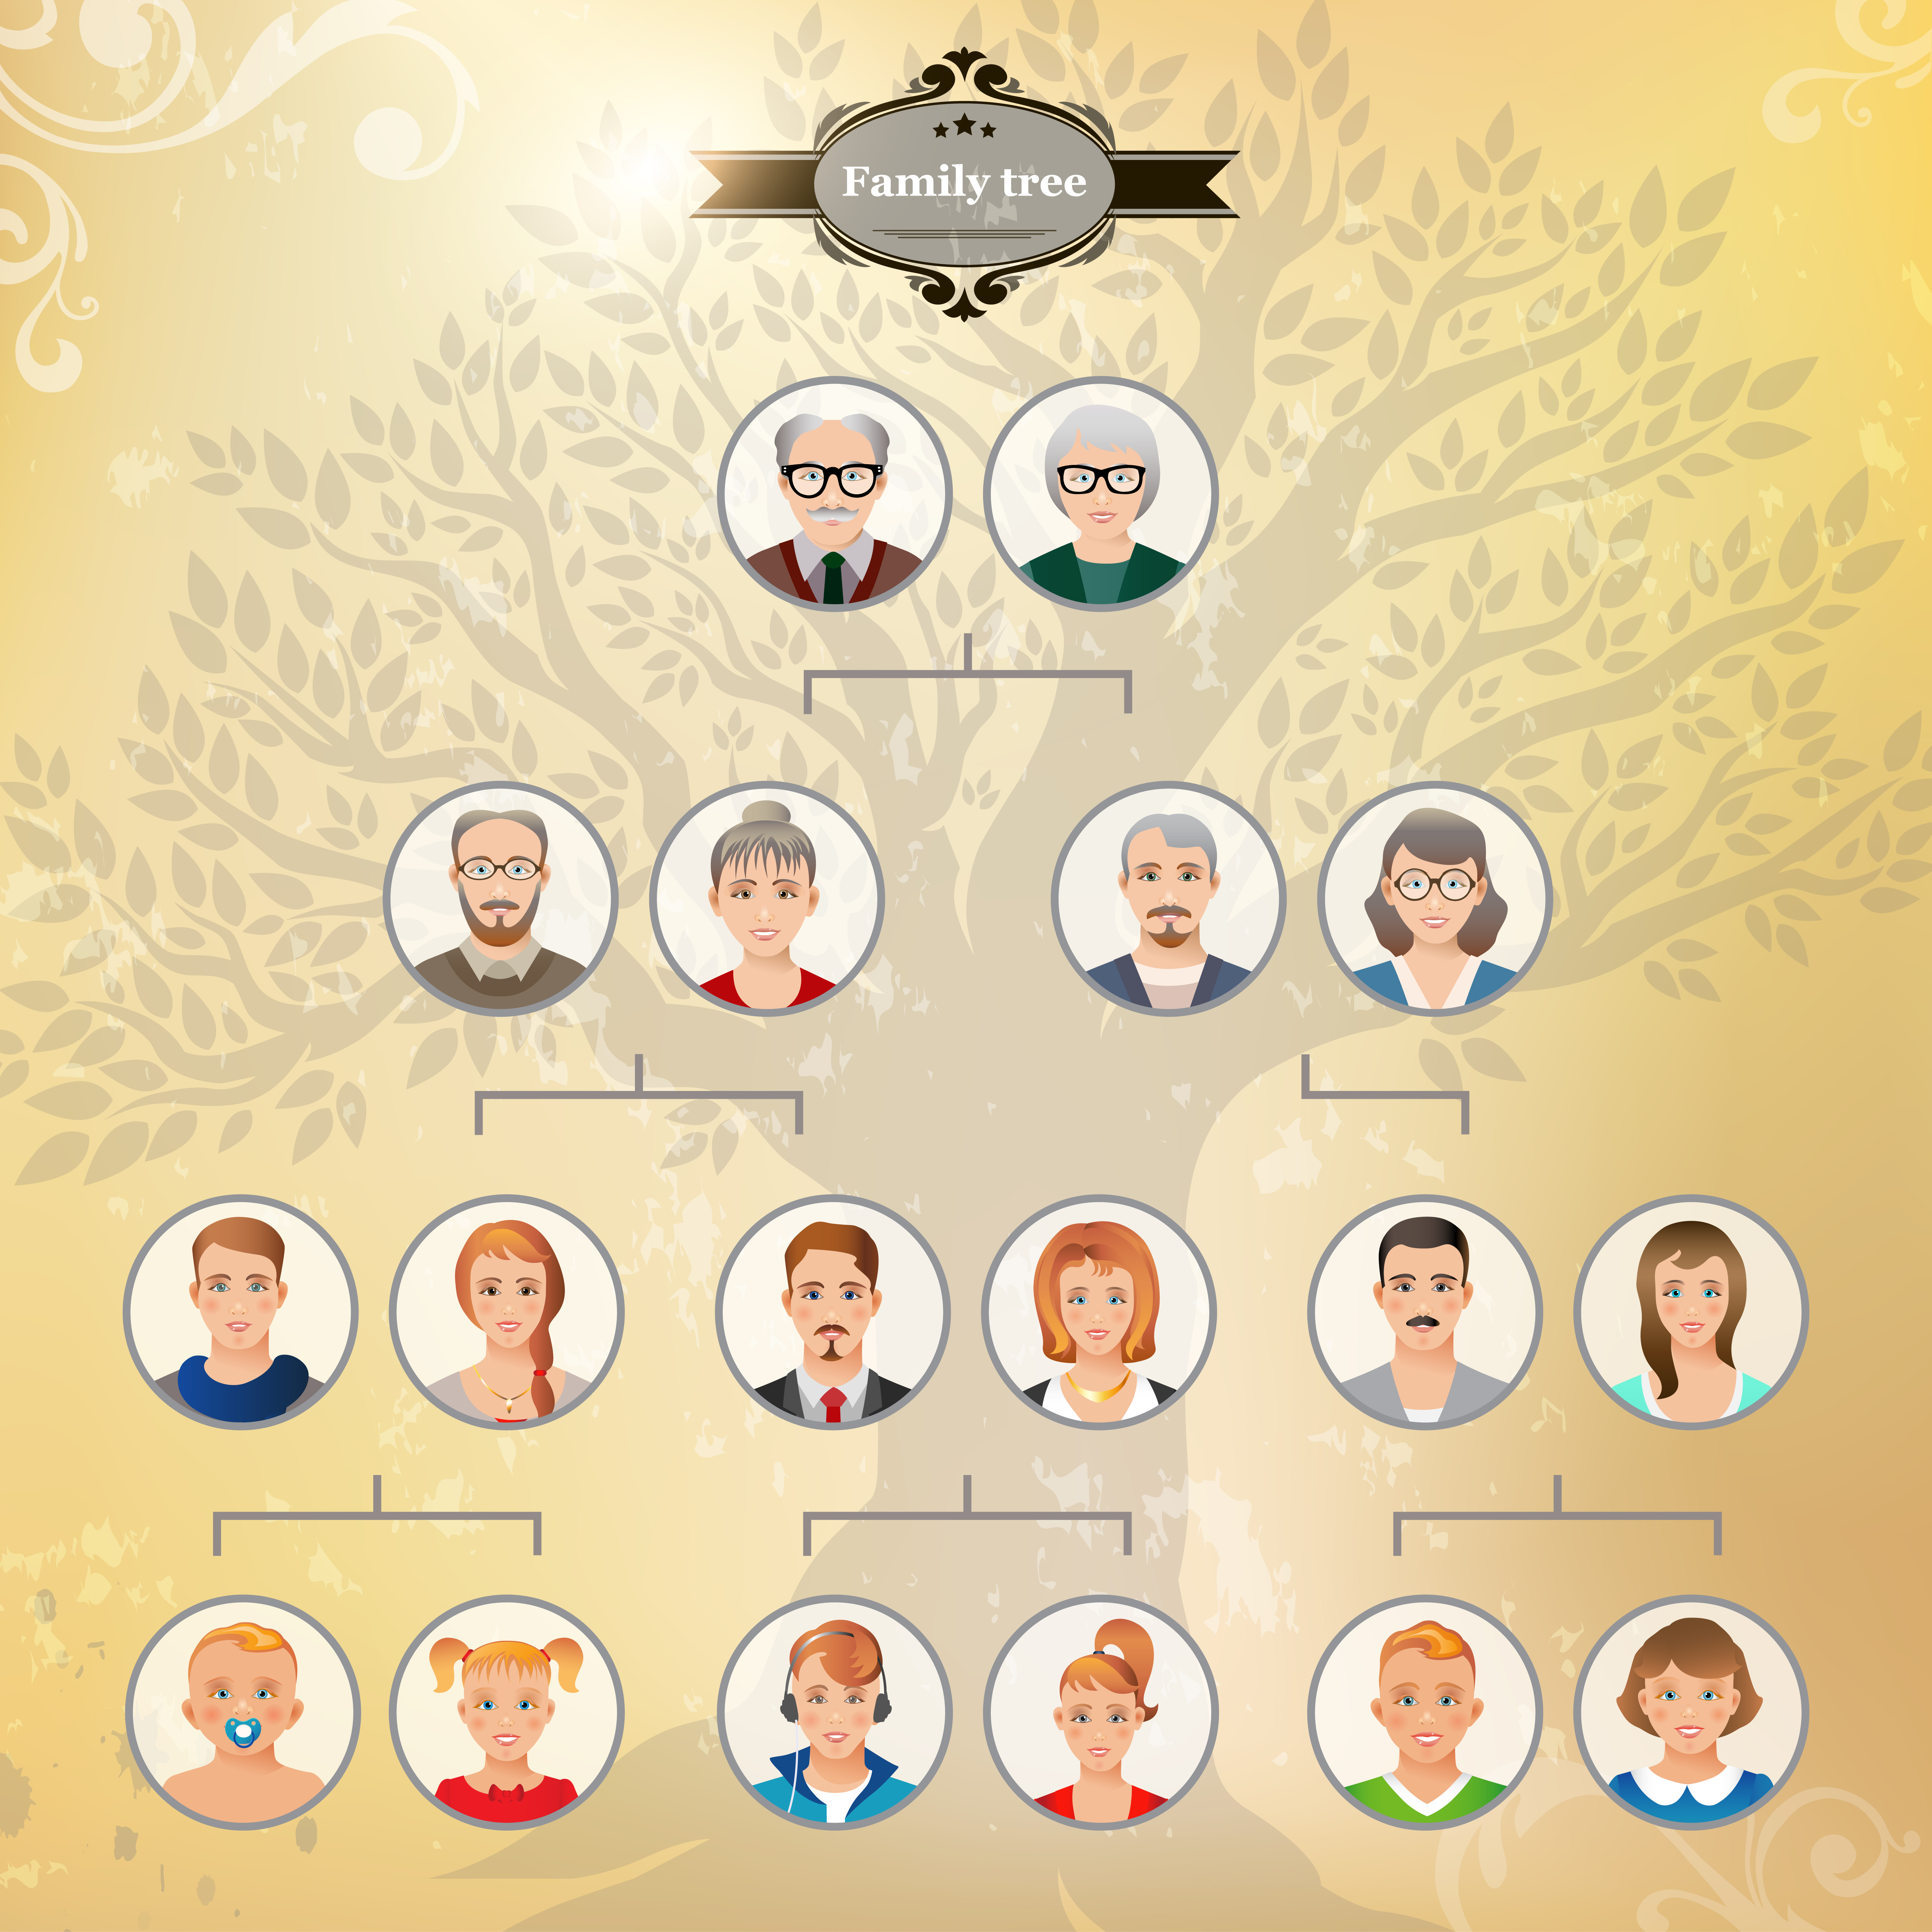 Cuadro Arbol Genealogico Genealogical Tree Of Your Family Family Tree With Icons Of